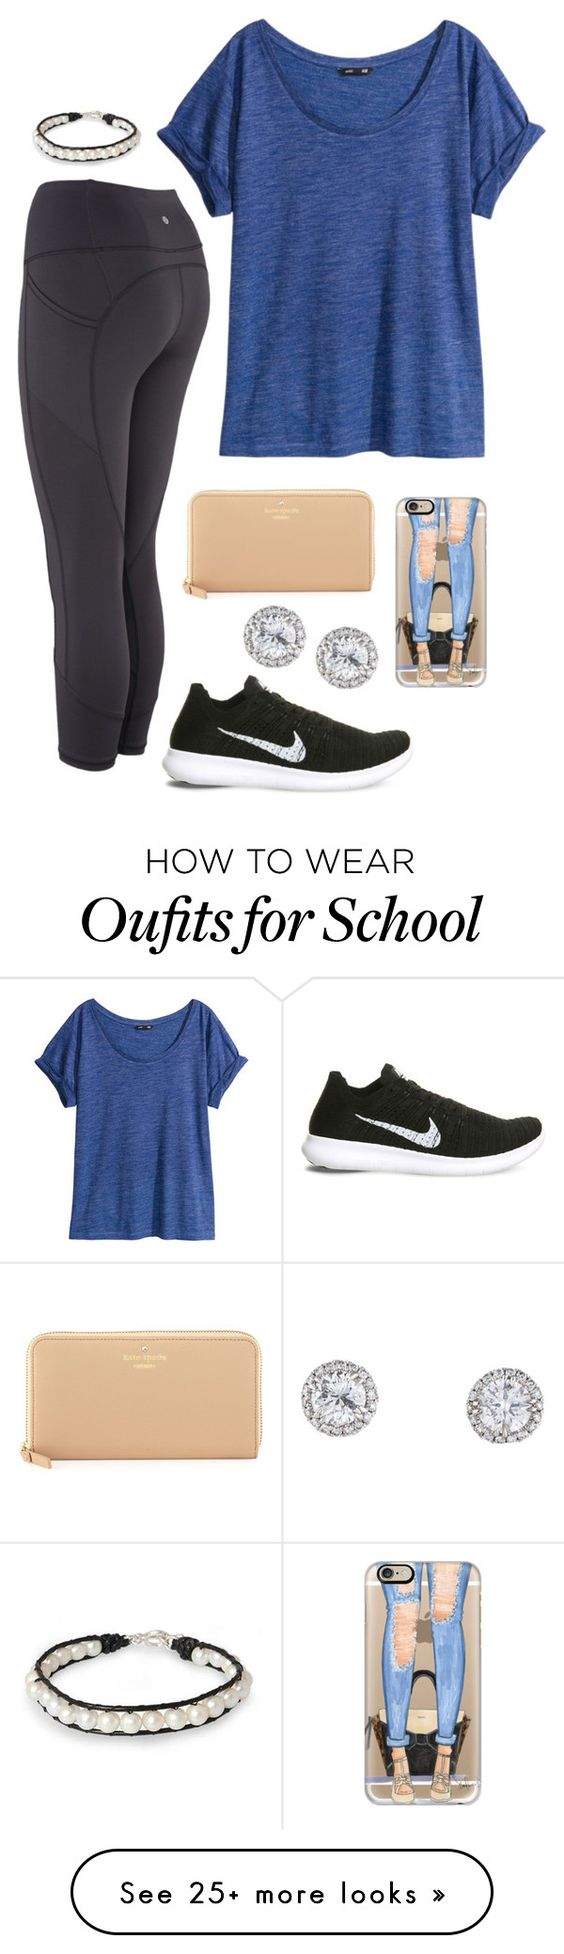 """""""School"""" by classygrace on Polyvore featuring NIKE, H&M, NOVICA, Kate Spade, Casetify and gracesfavorites"""